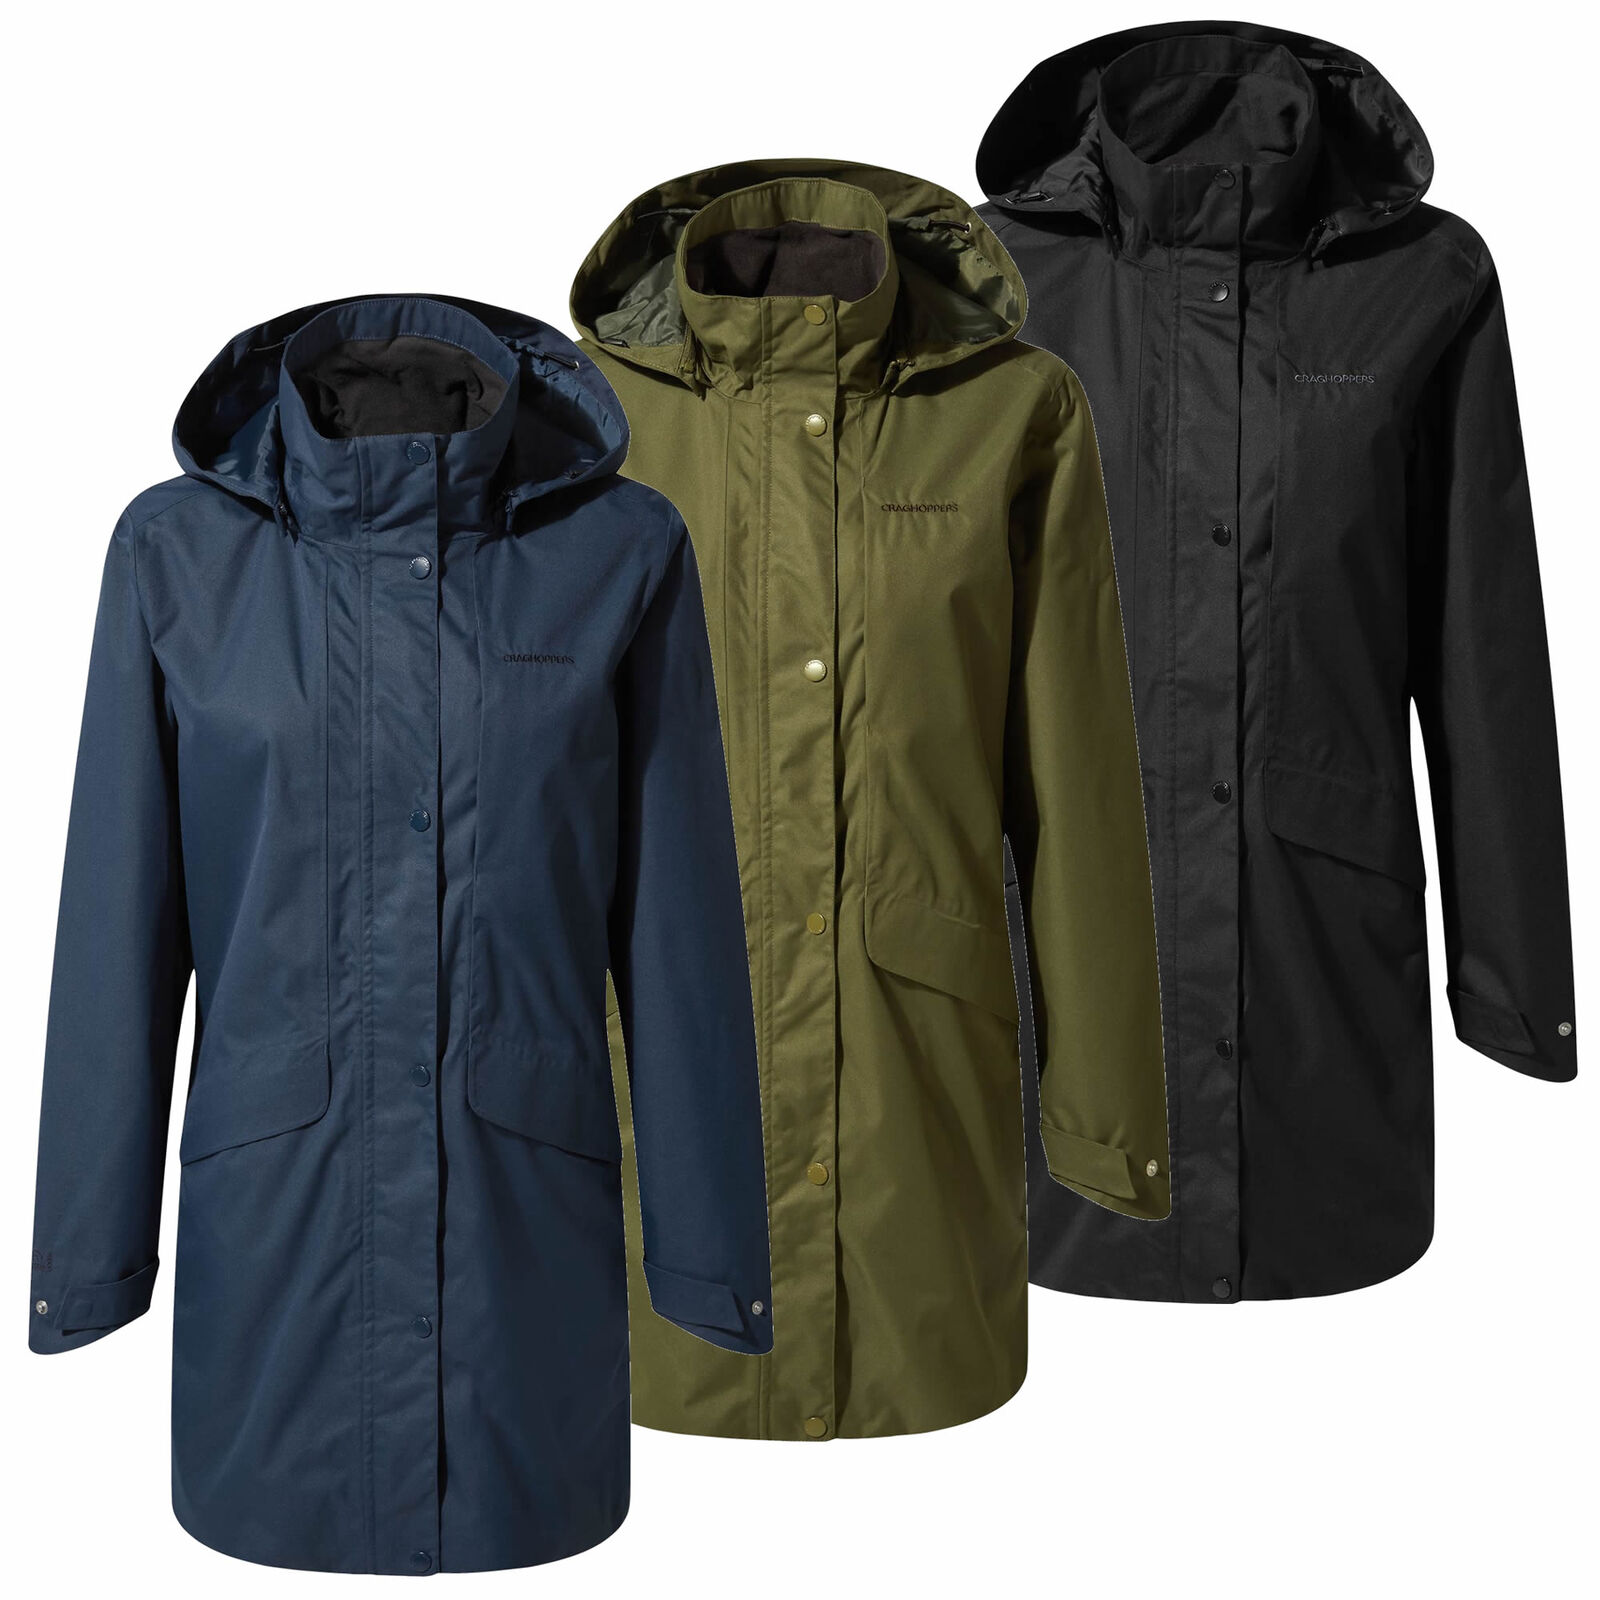 Craghoppers Aird Chaqueta  para mujer  descuento online